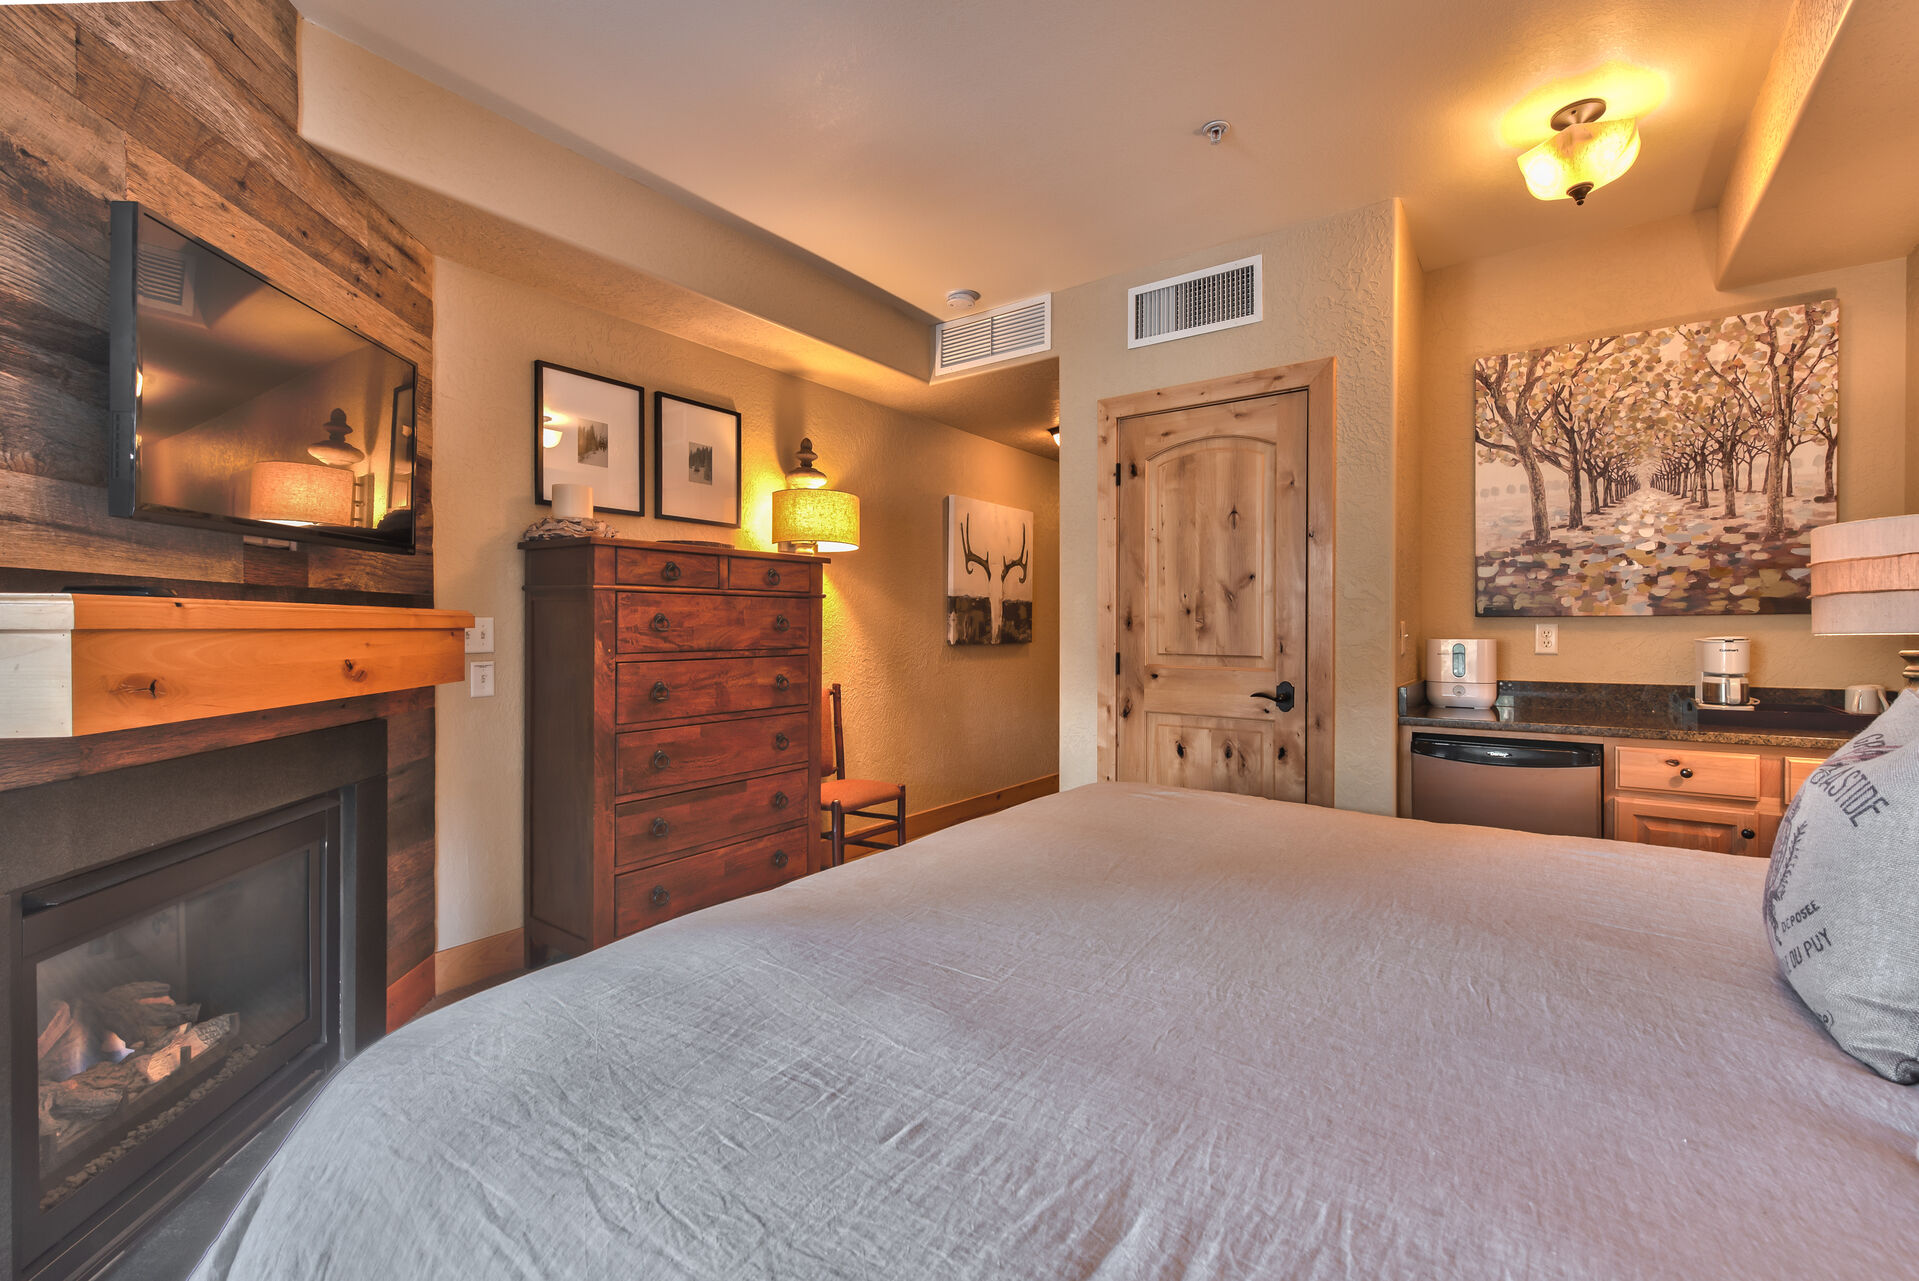 Master bedroom with King Bed, Flat Screen TV, Gas Fireplace, Private Balcony, and Private Bath